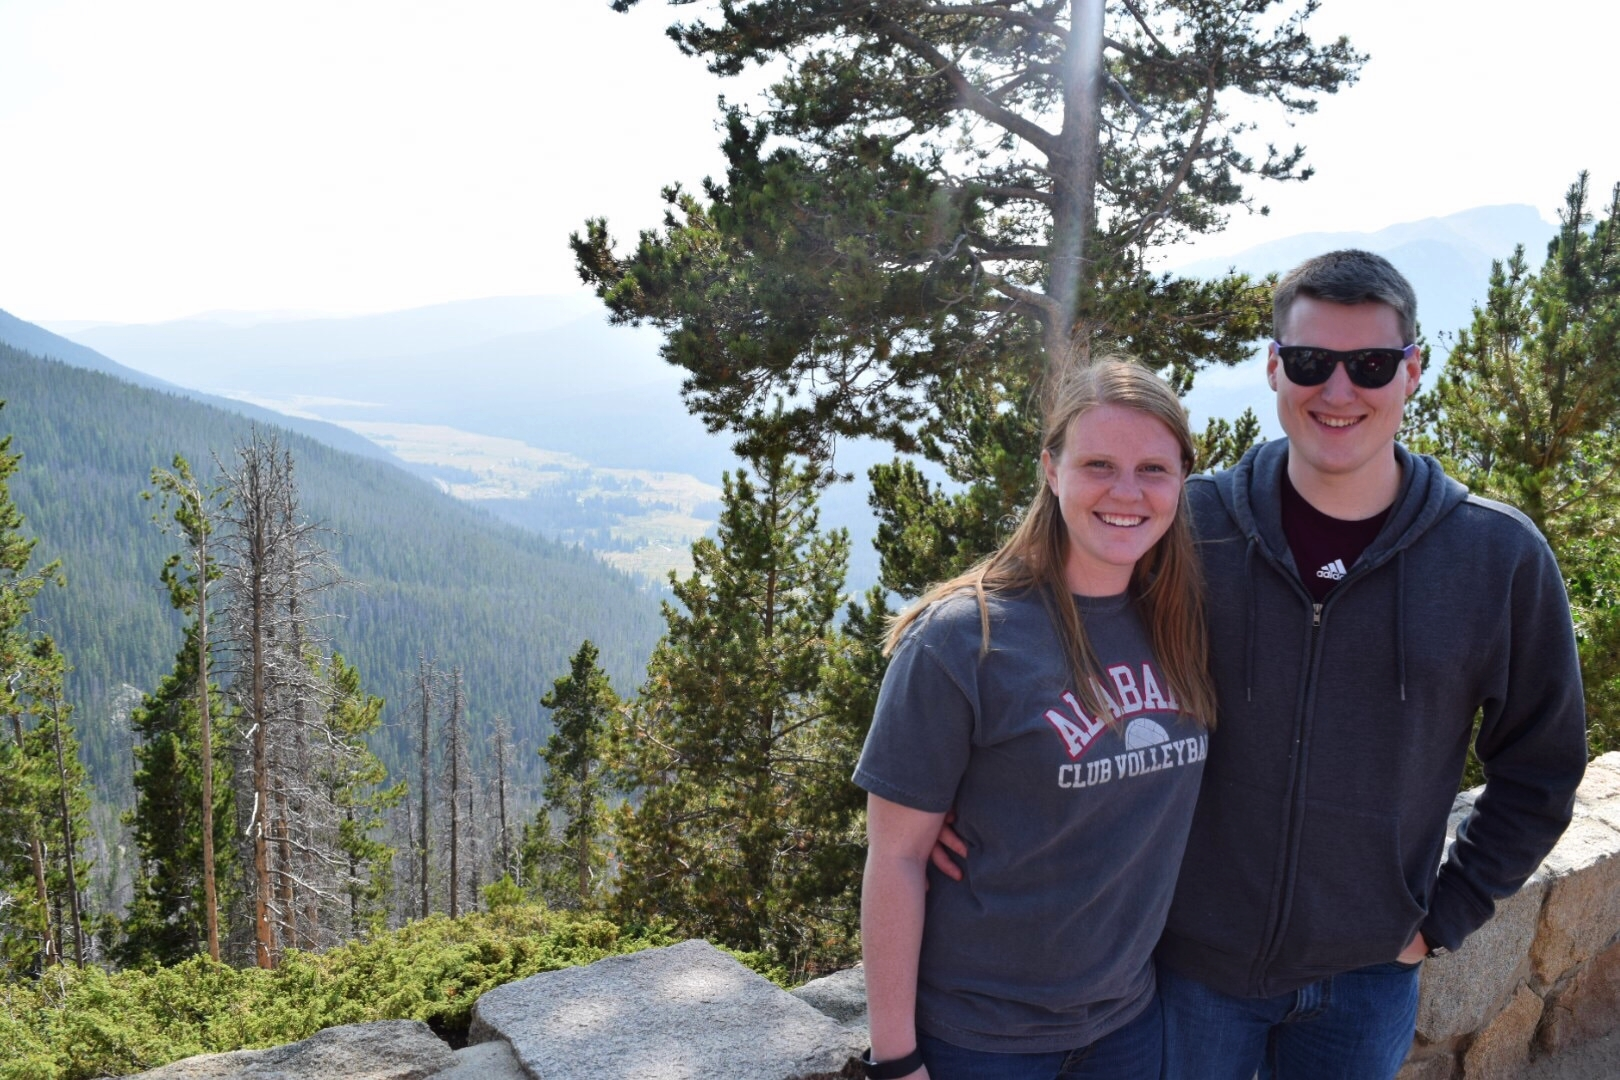 A picture a very kind Park Ranger took of us on our first complete drive of Trail Ridge Road. He told us there would be moose in that valley. He lied.